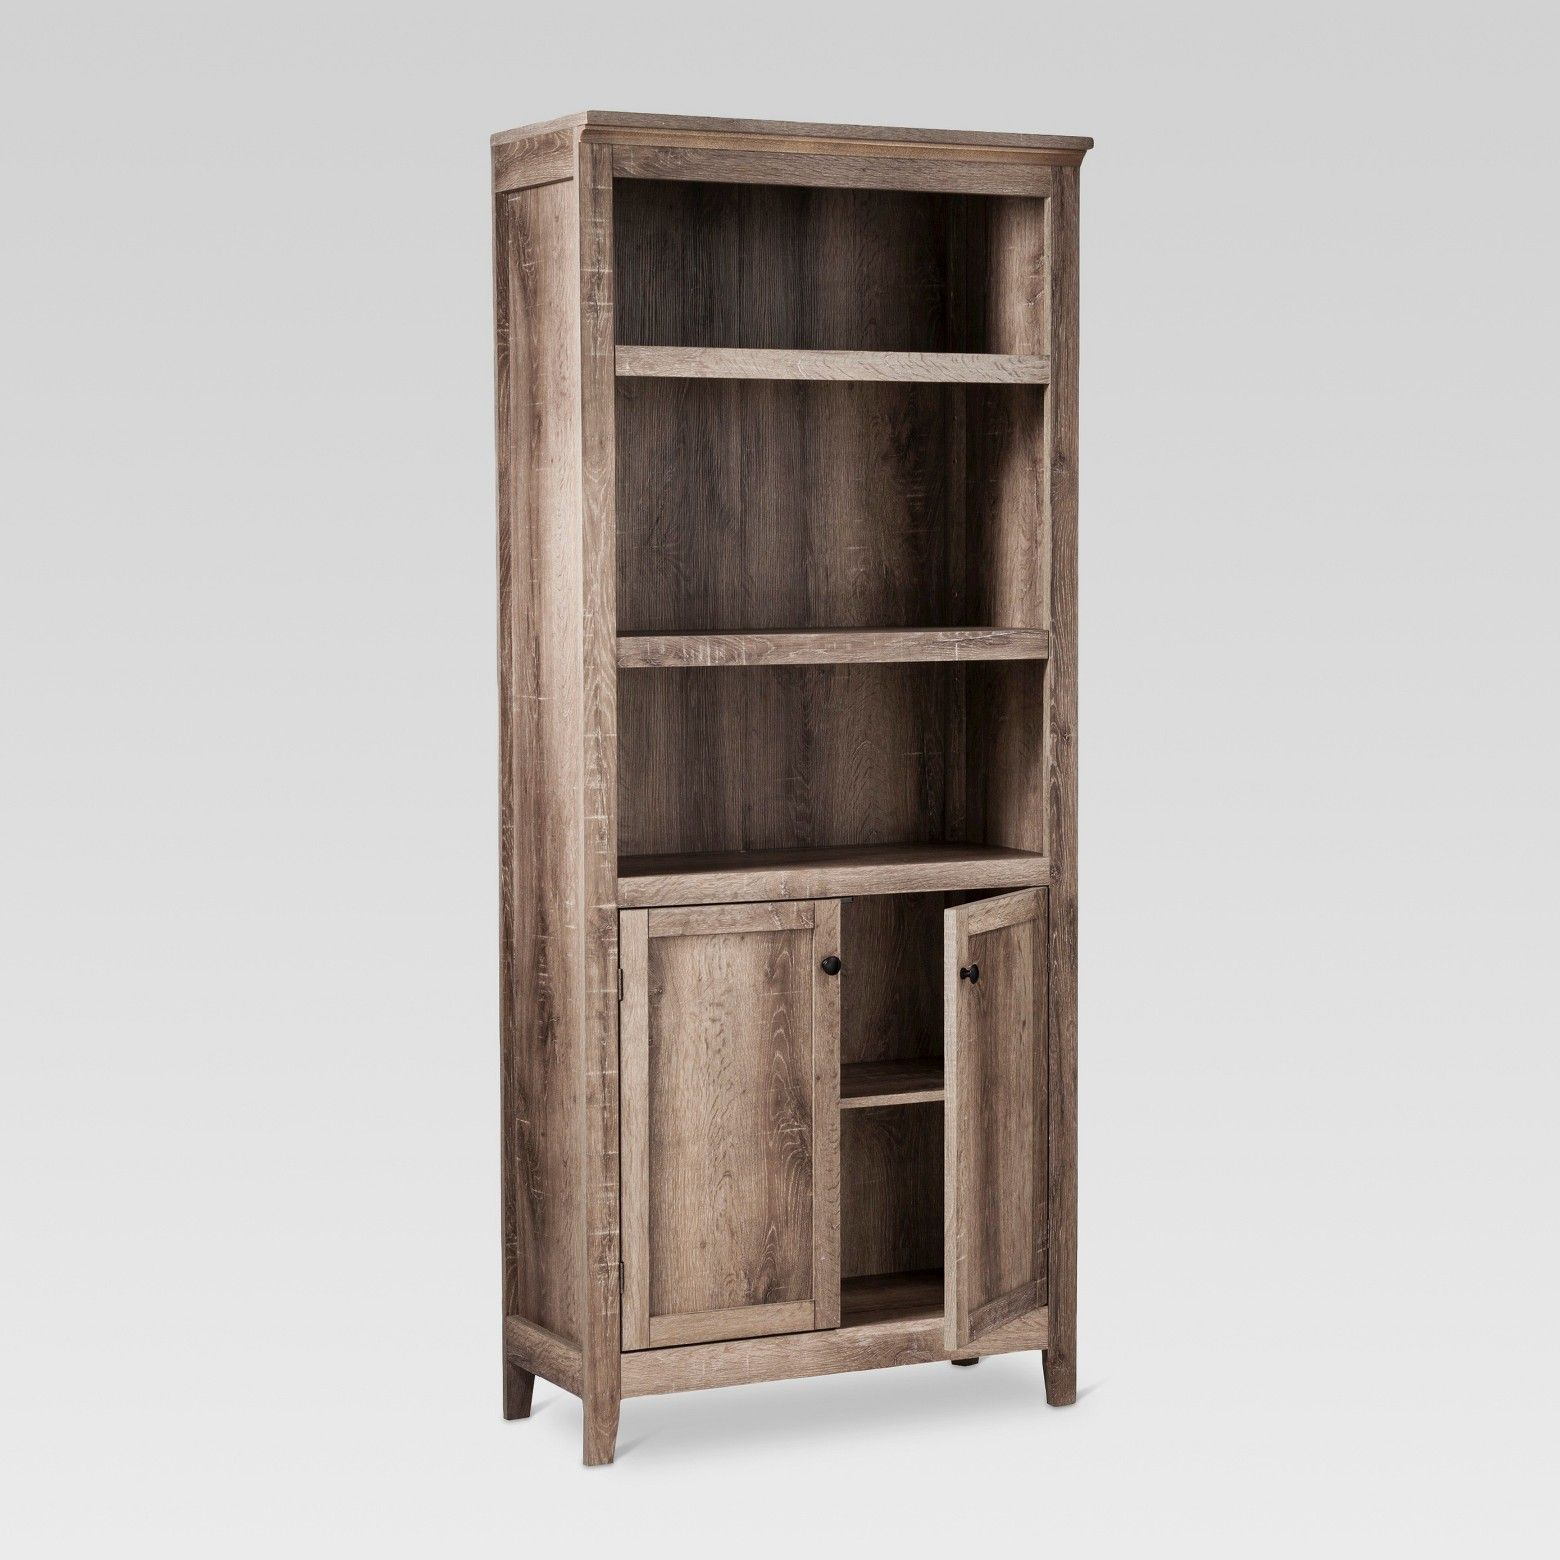 exchange furniture red pinterest bookcase is must target chrome have pics inexpensive decor full awesome reclaimed model bookcases design gloss bookshelves at home arbor you diy of this wood new corner size